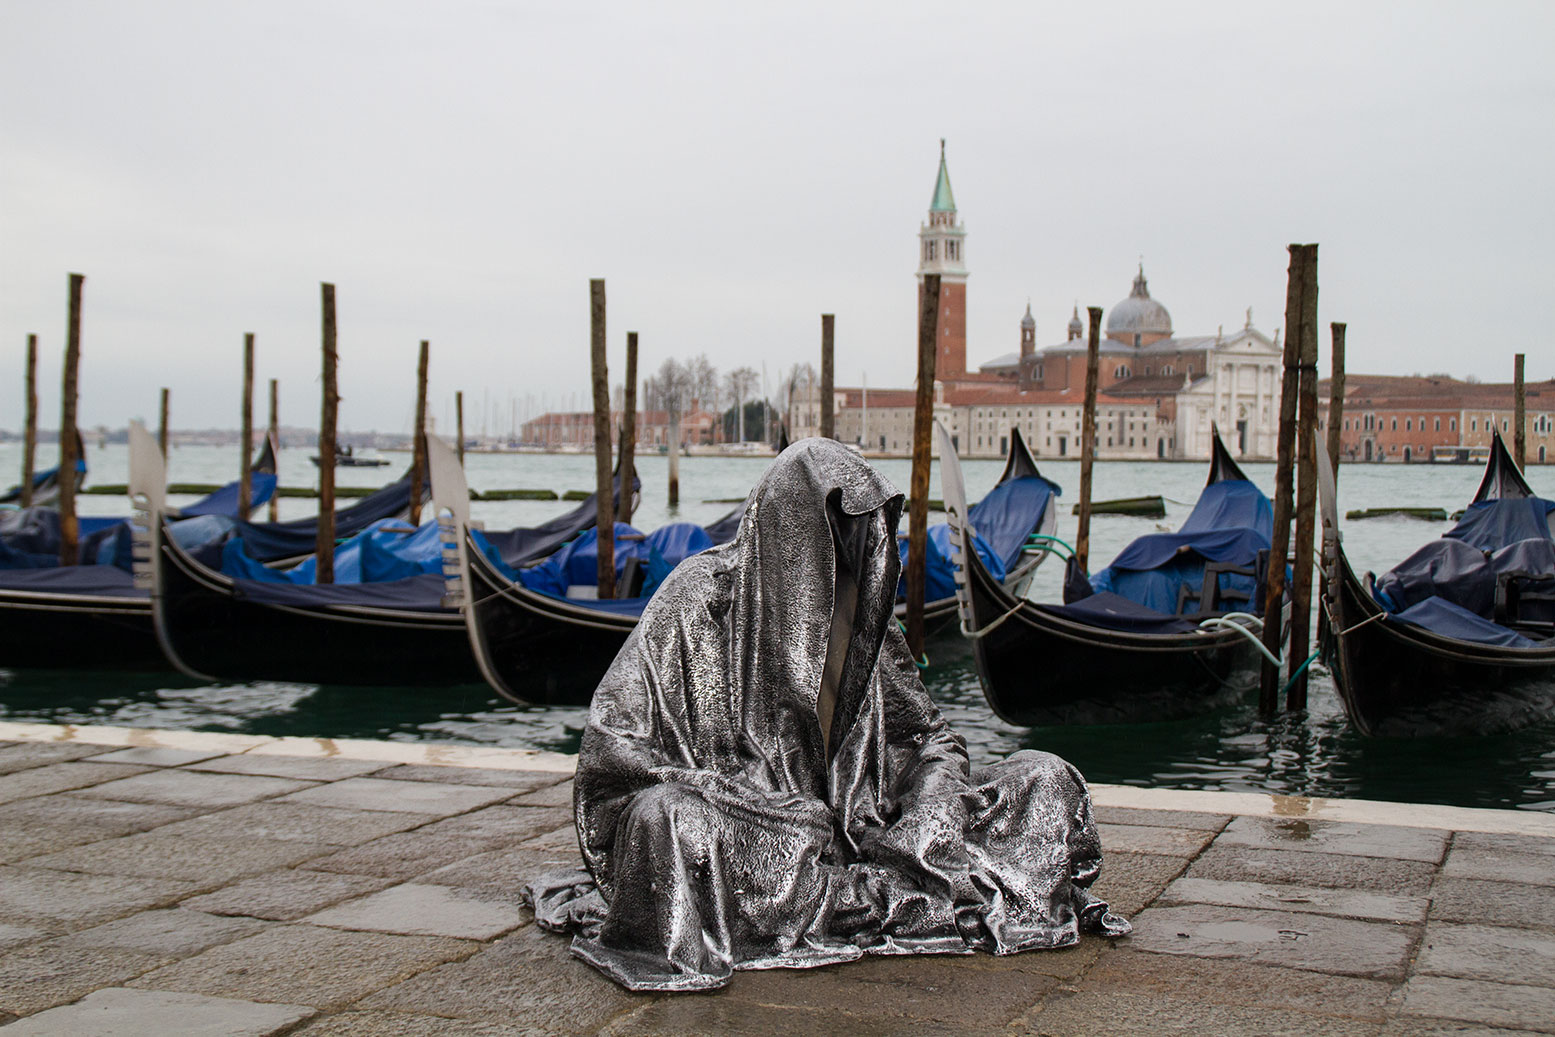 art-biennale-venice-guardians-of-time-manfred-kili-kielnhofer-contemporary-fine-art-design-sculpture-antique-show-8005